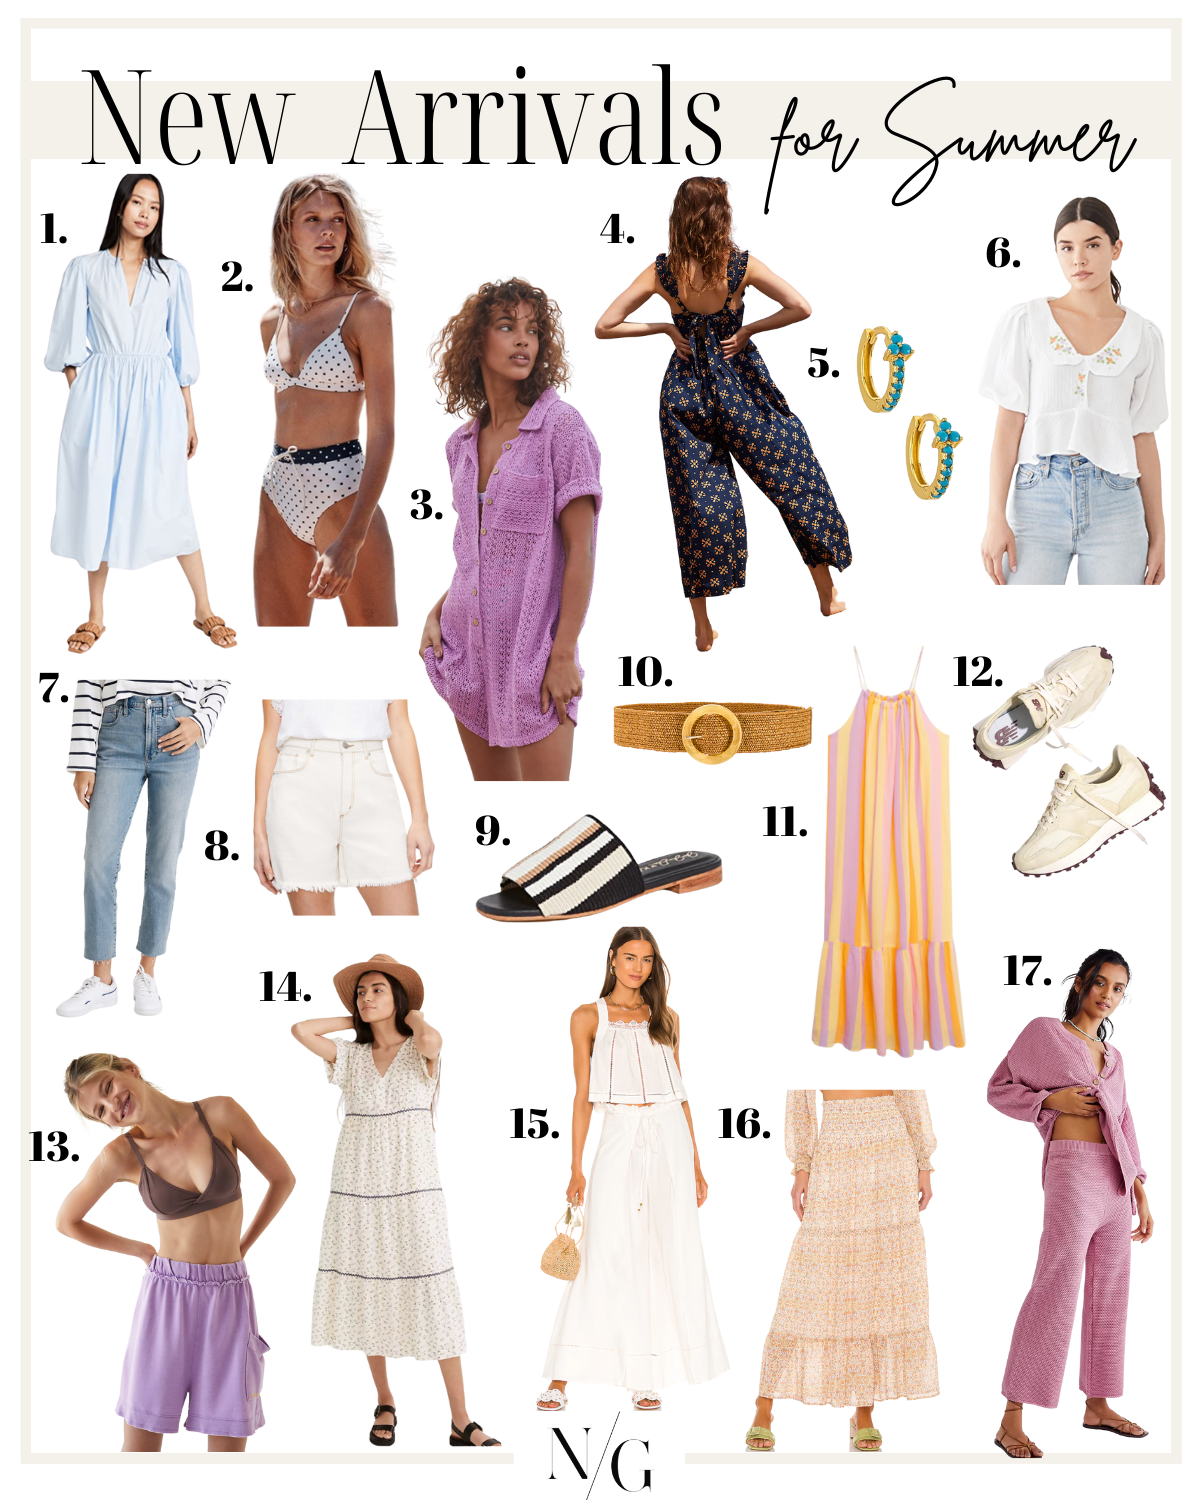 collage of New arrivals for Summer